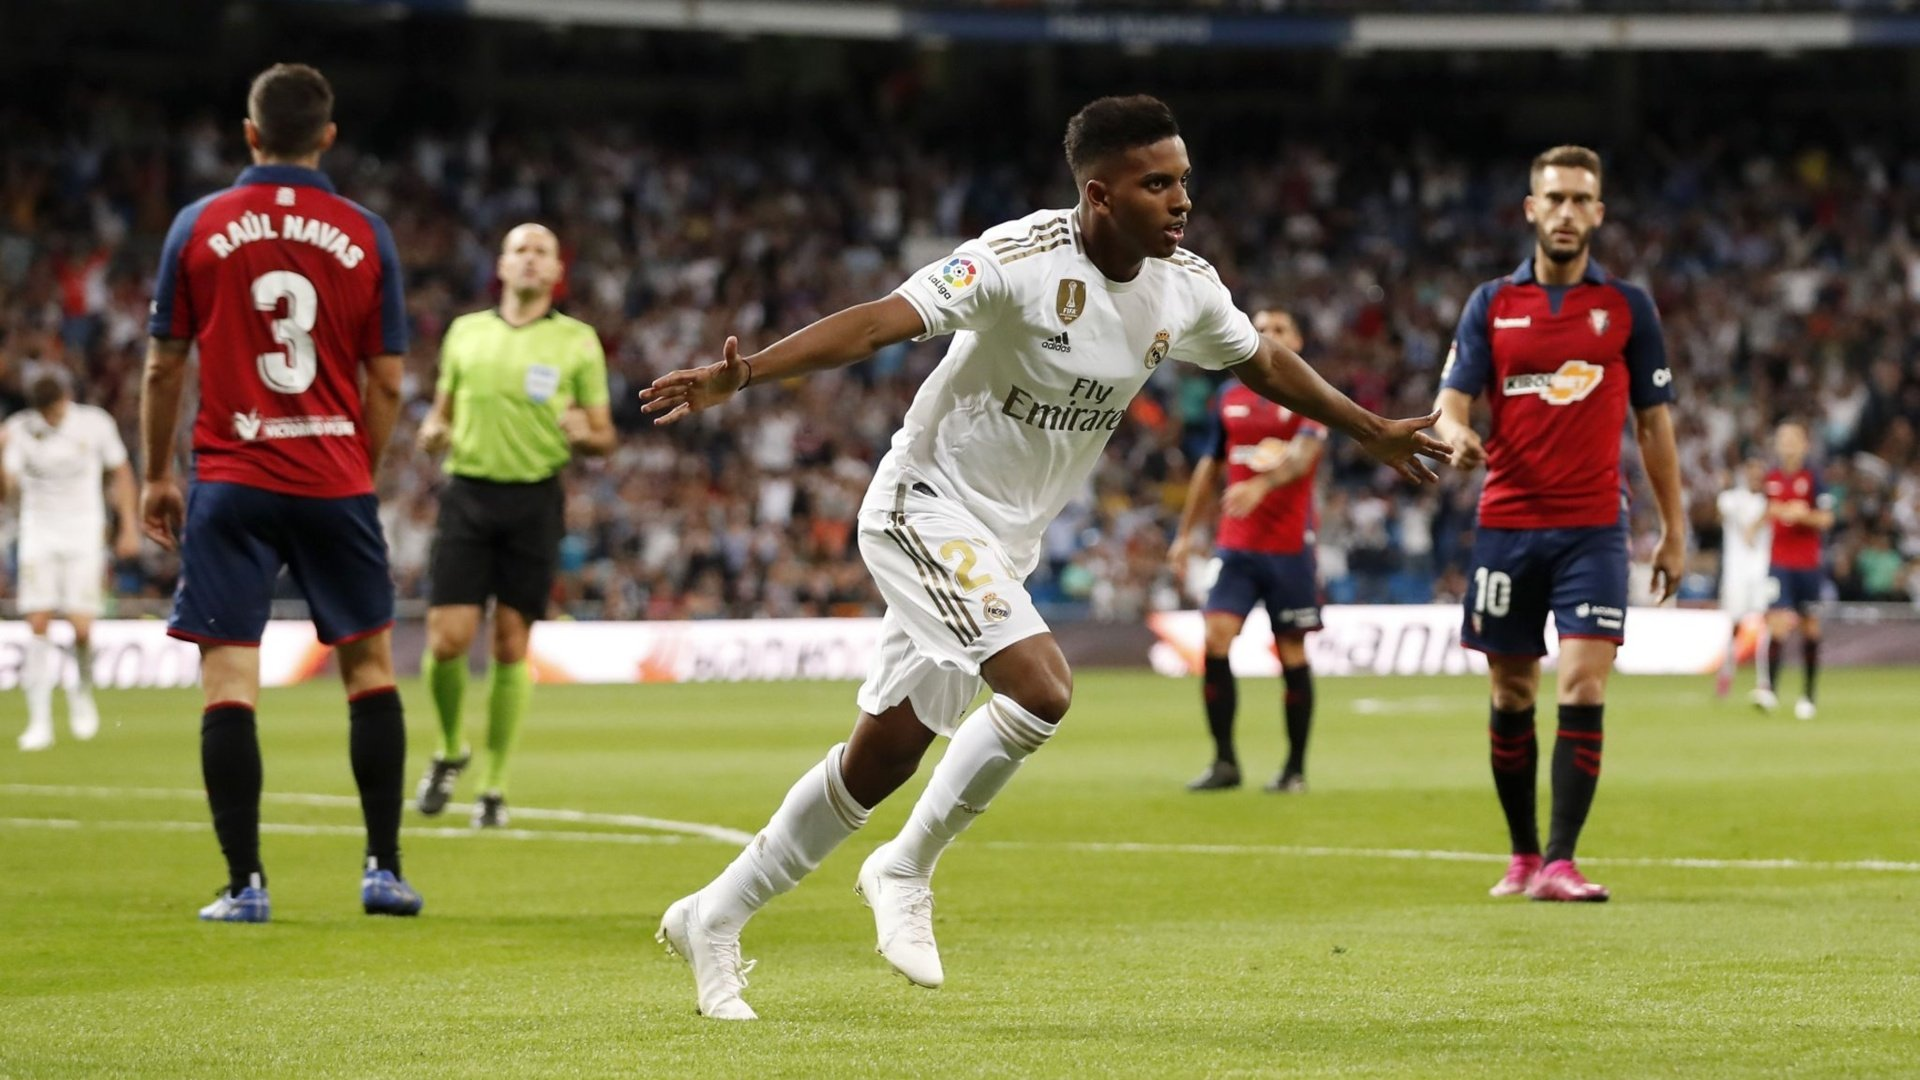 Report: Real Madrid 2-0 Osasuna